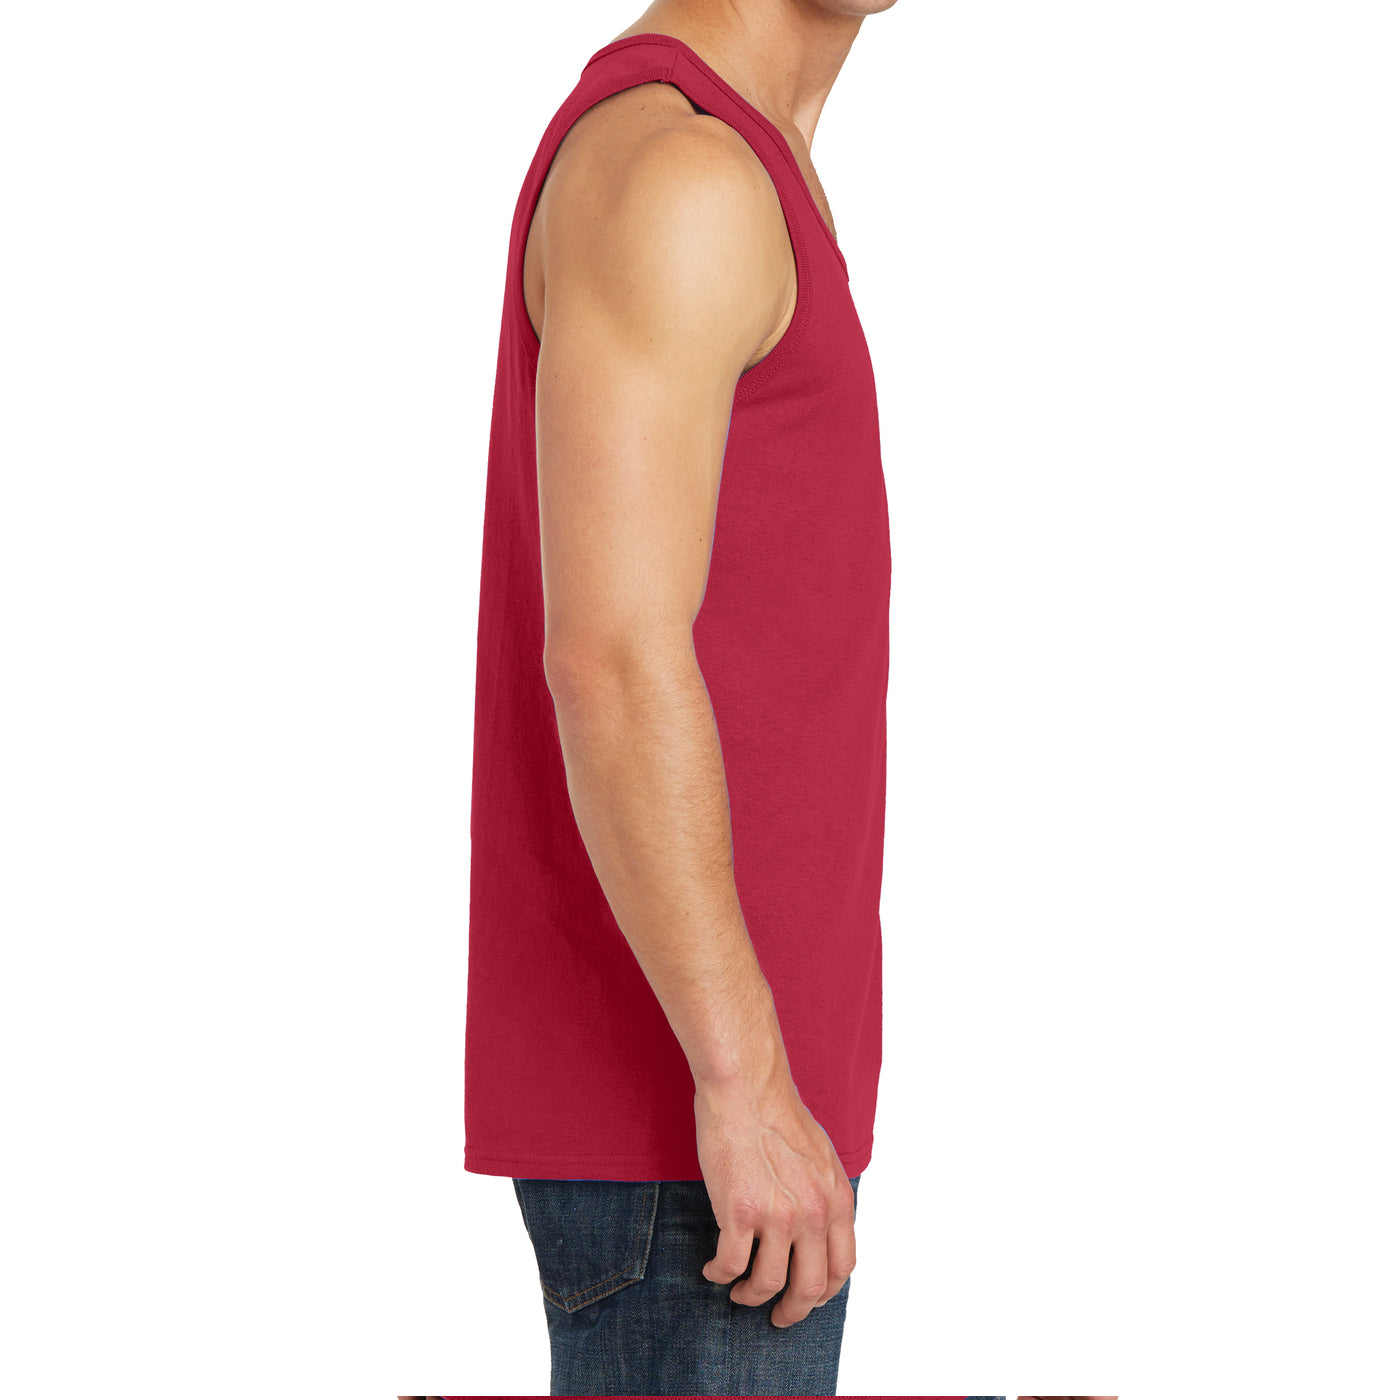 Men's Core Cotton Tank Top - Red - Side